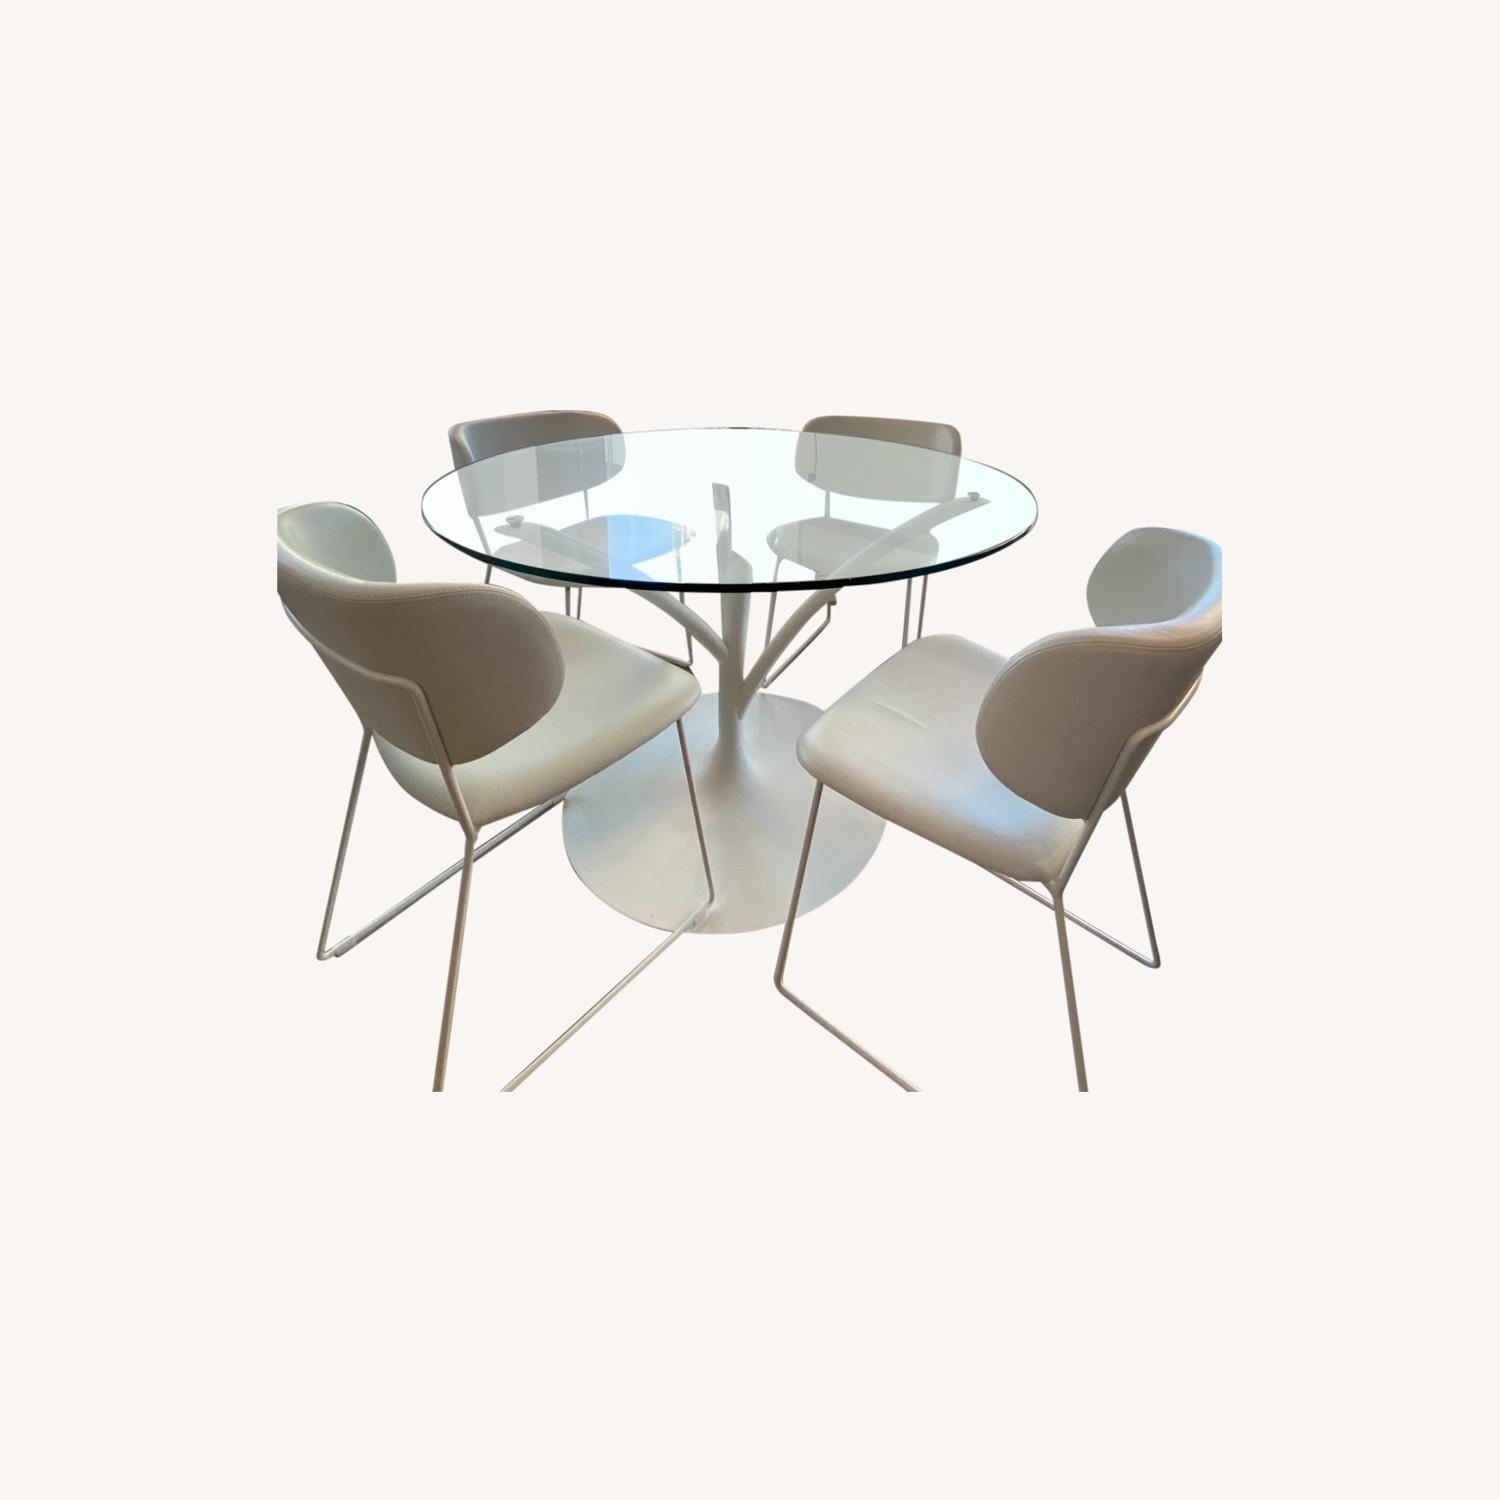 Calligaris Acacia Round Glass Table + 4 Claire Chairs - image-0